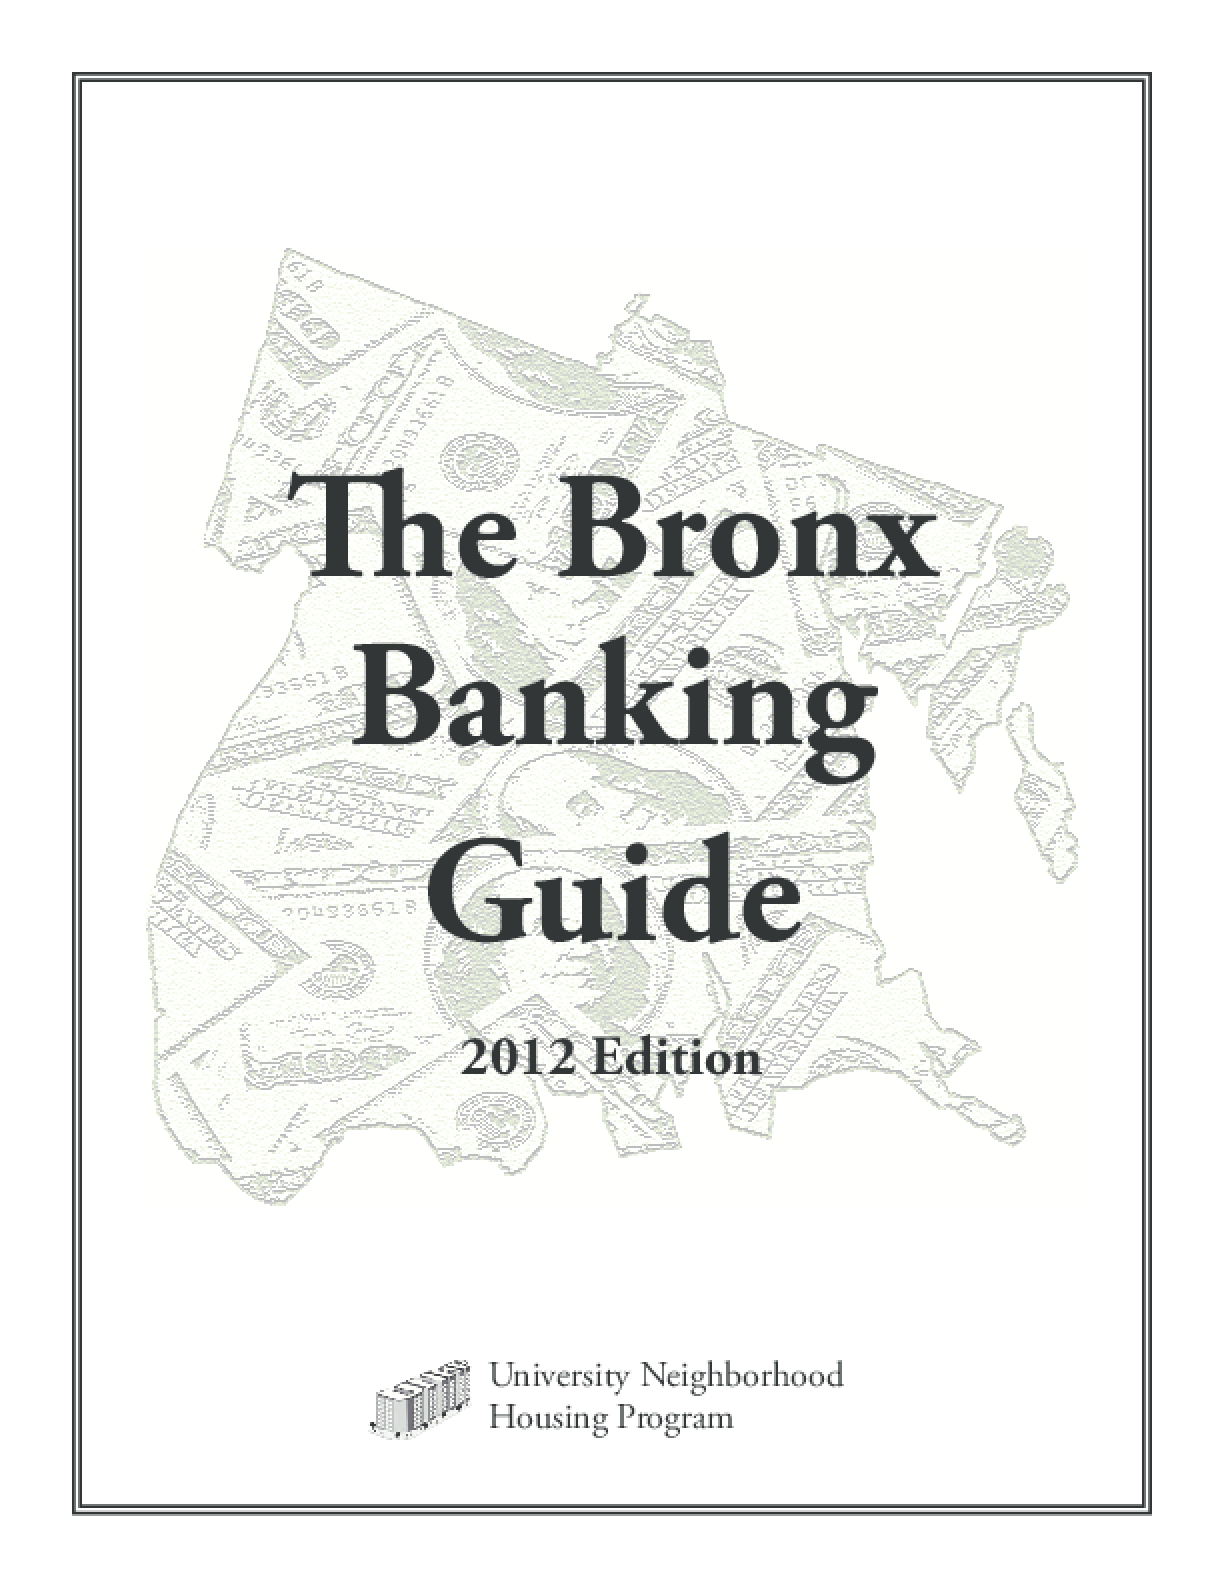 The Bronx Banking Guide